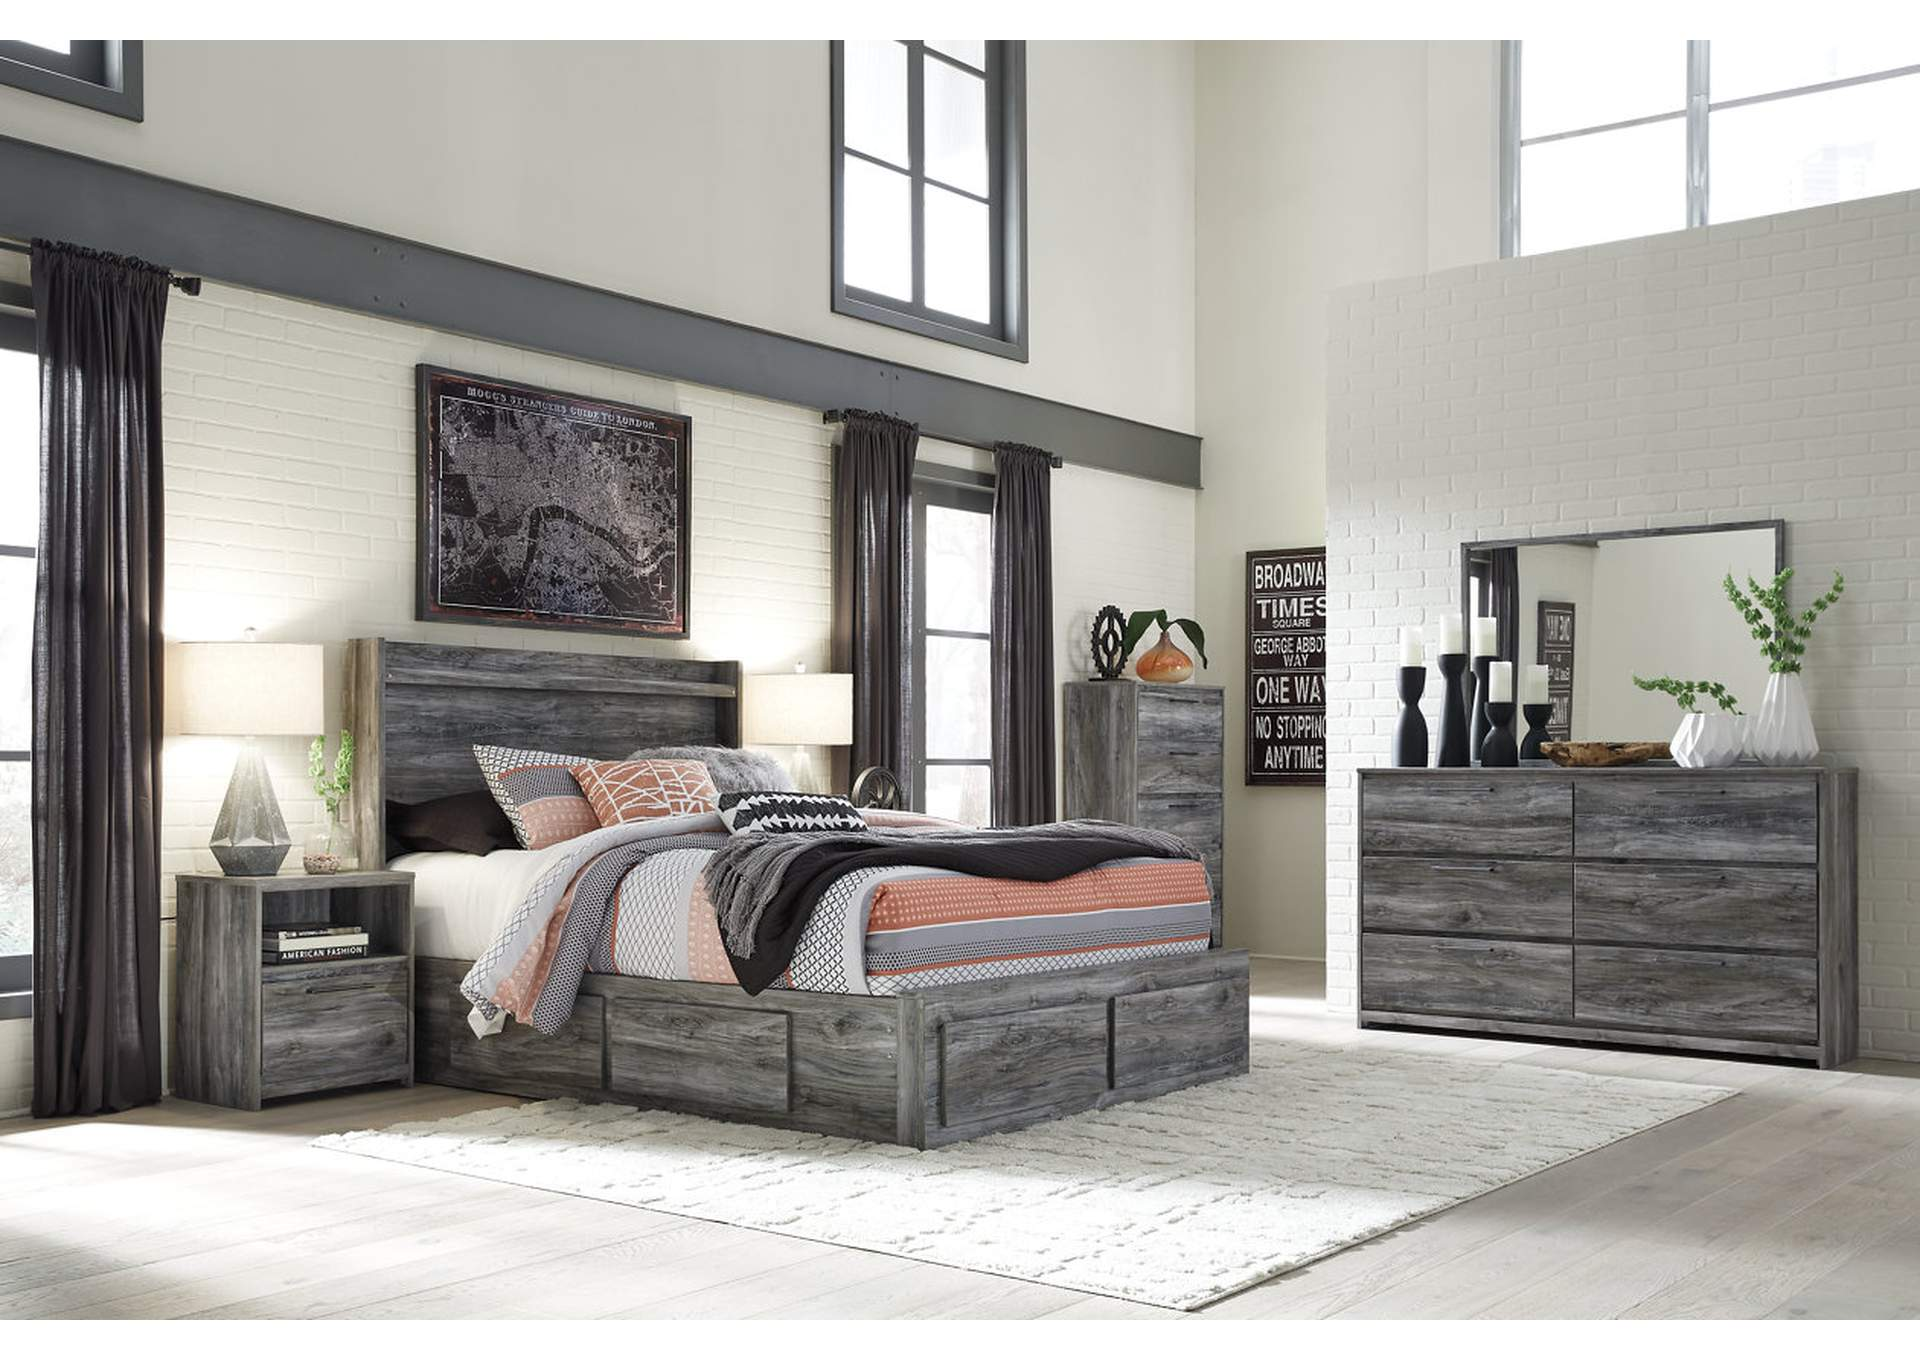 Baystorm Gray King Storage Bed W/Dresser, Mirror, Drawer Chest And  Nightstand,